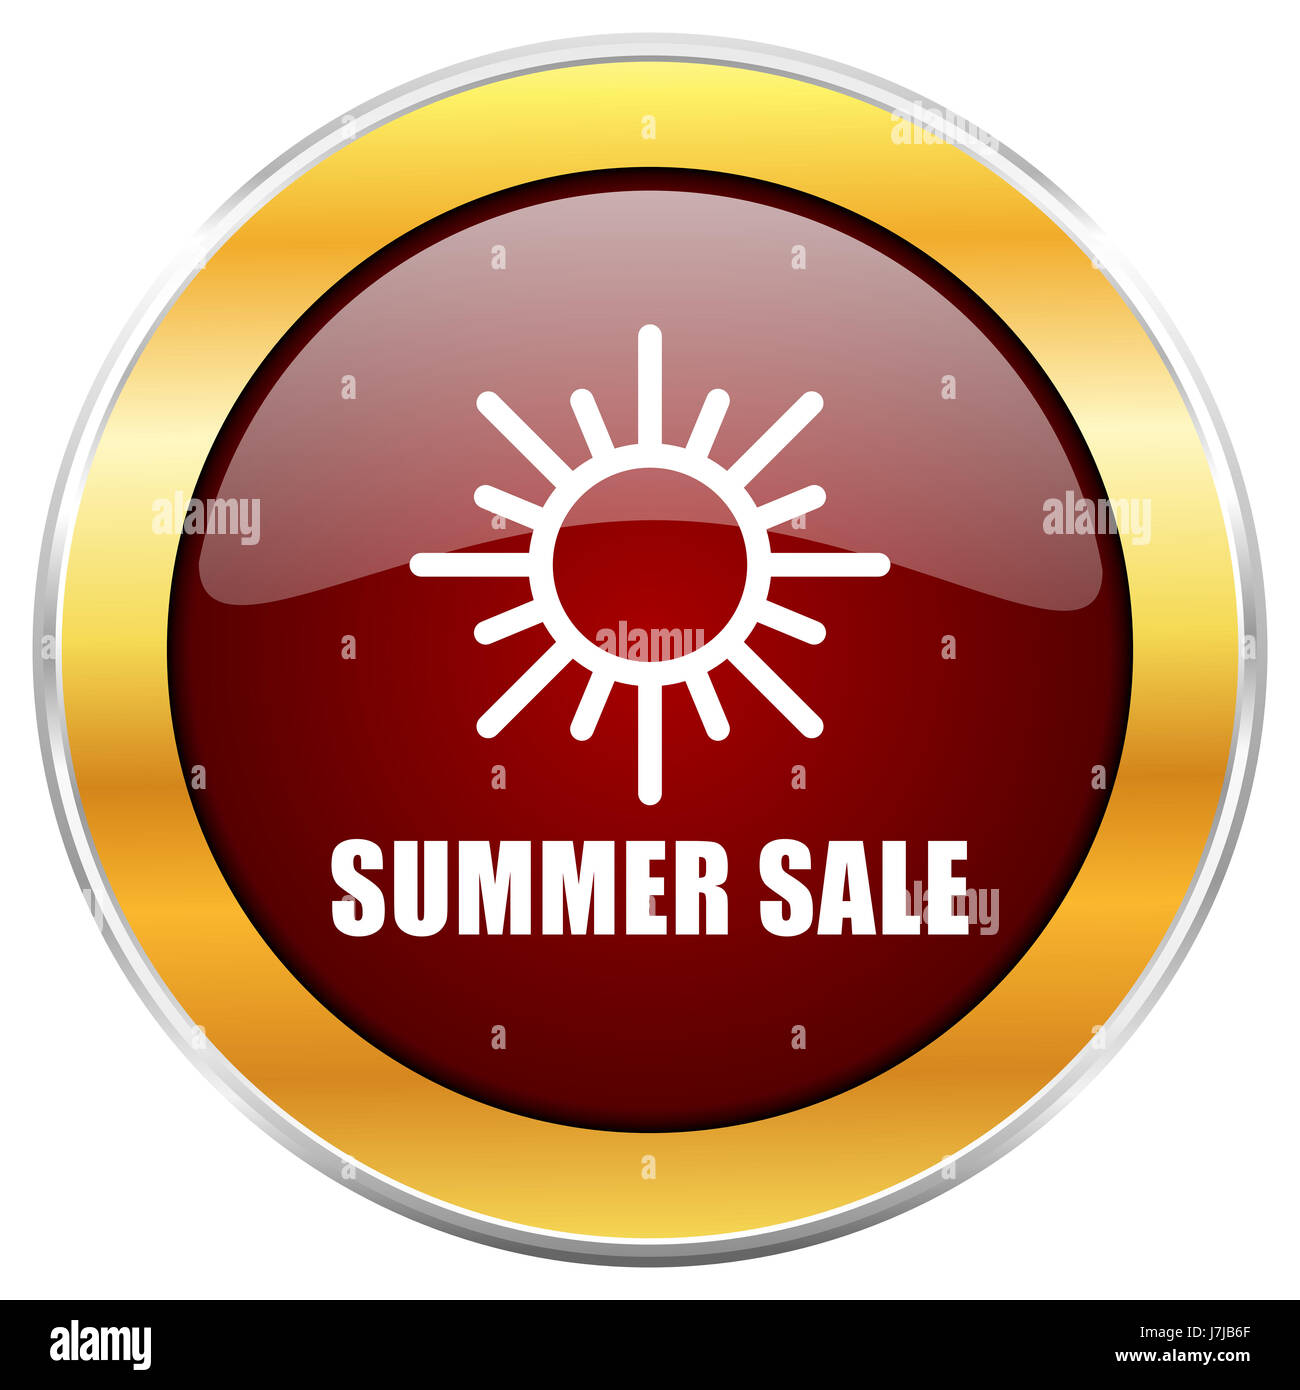 Summer sale red web icon with golden border isolated on white background. Round glossy button. - Stock Image